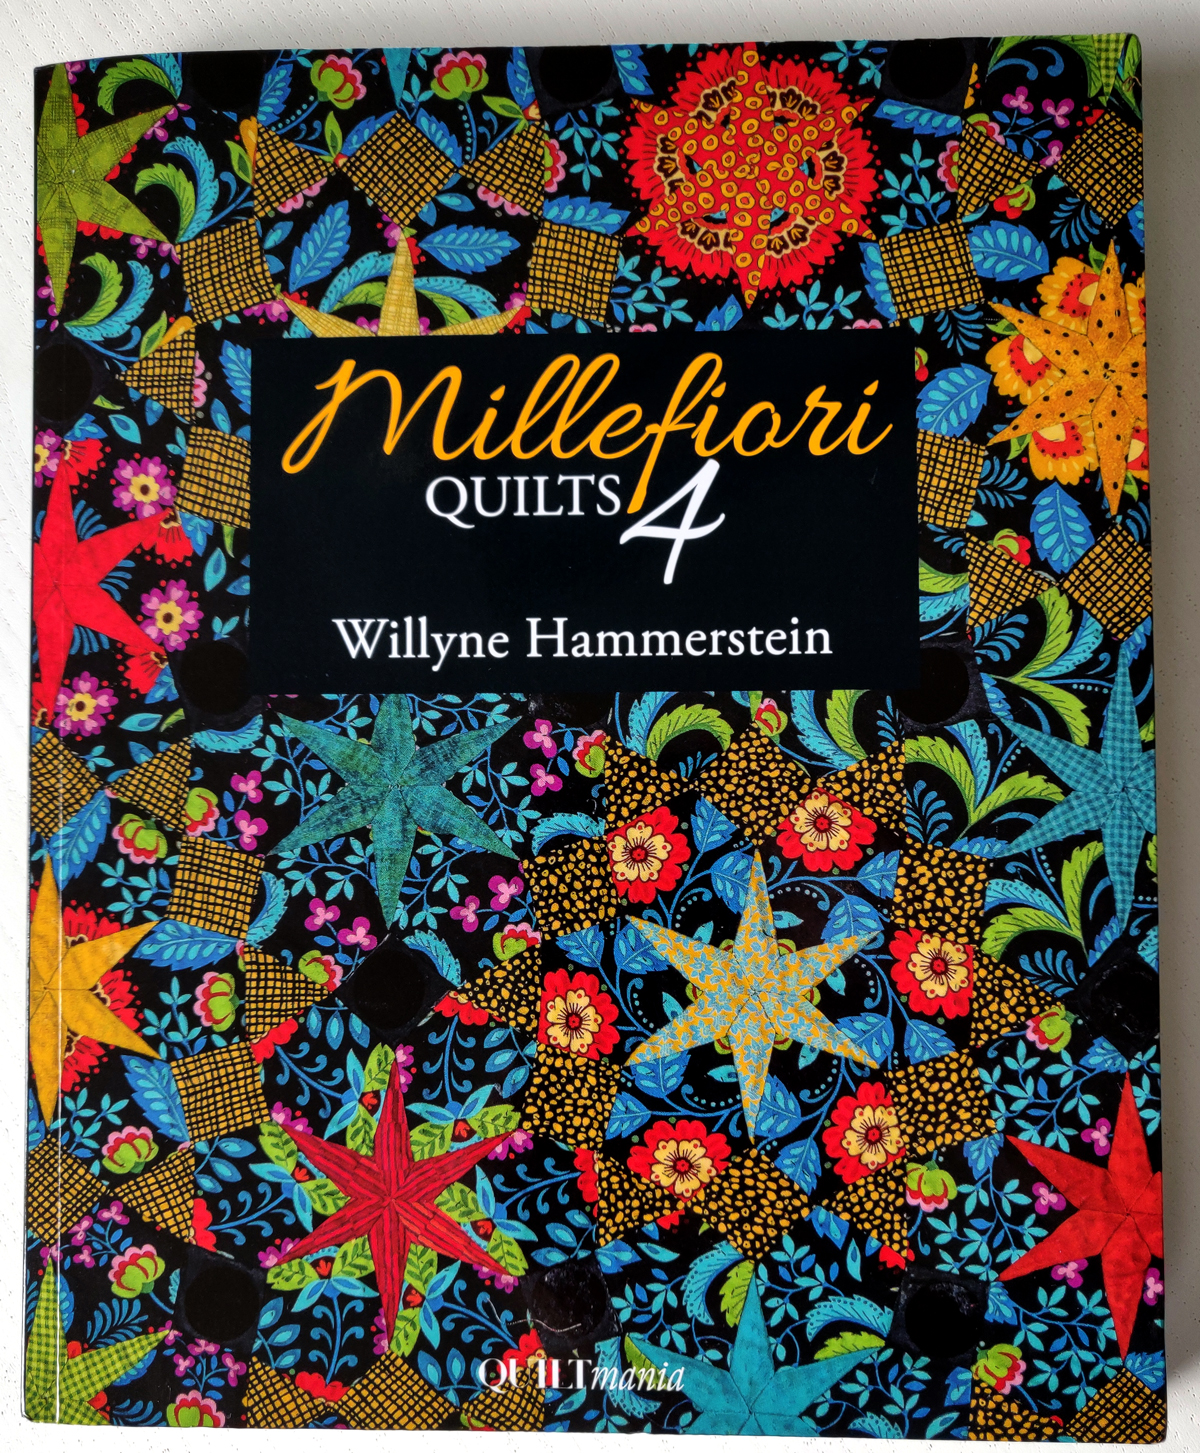 Millefiori Quilts 4 Book Cover